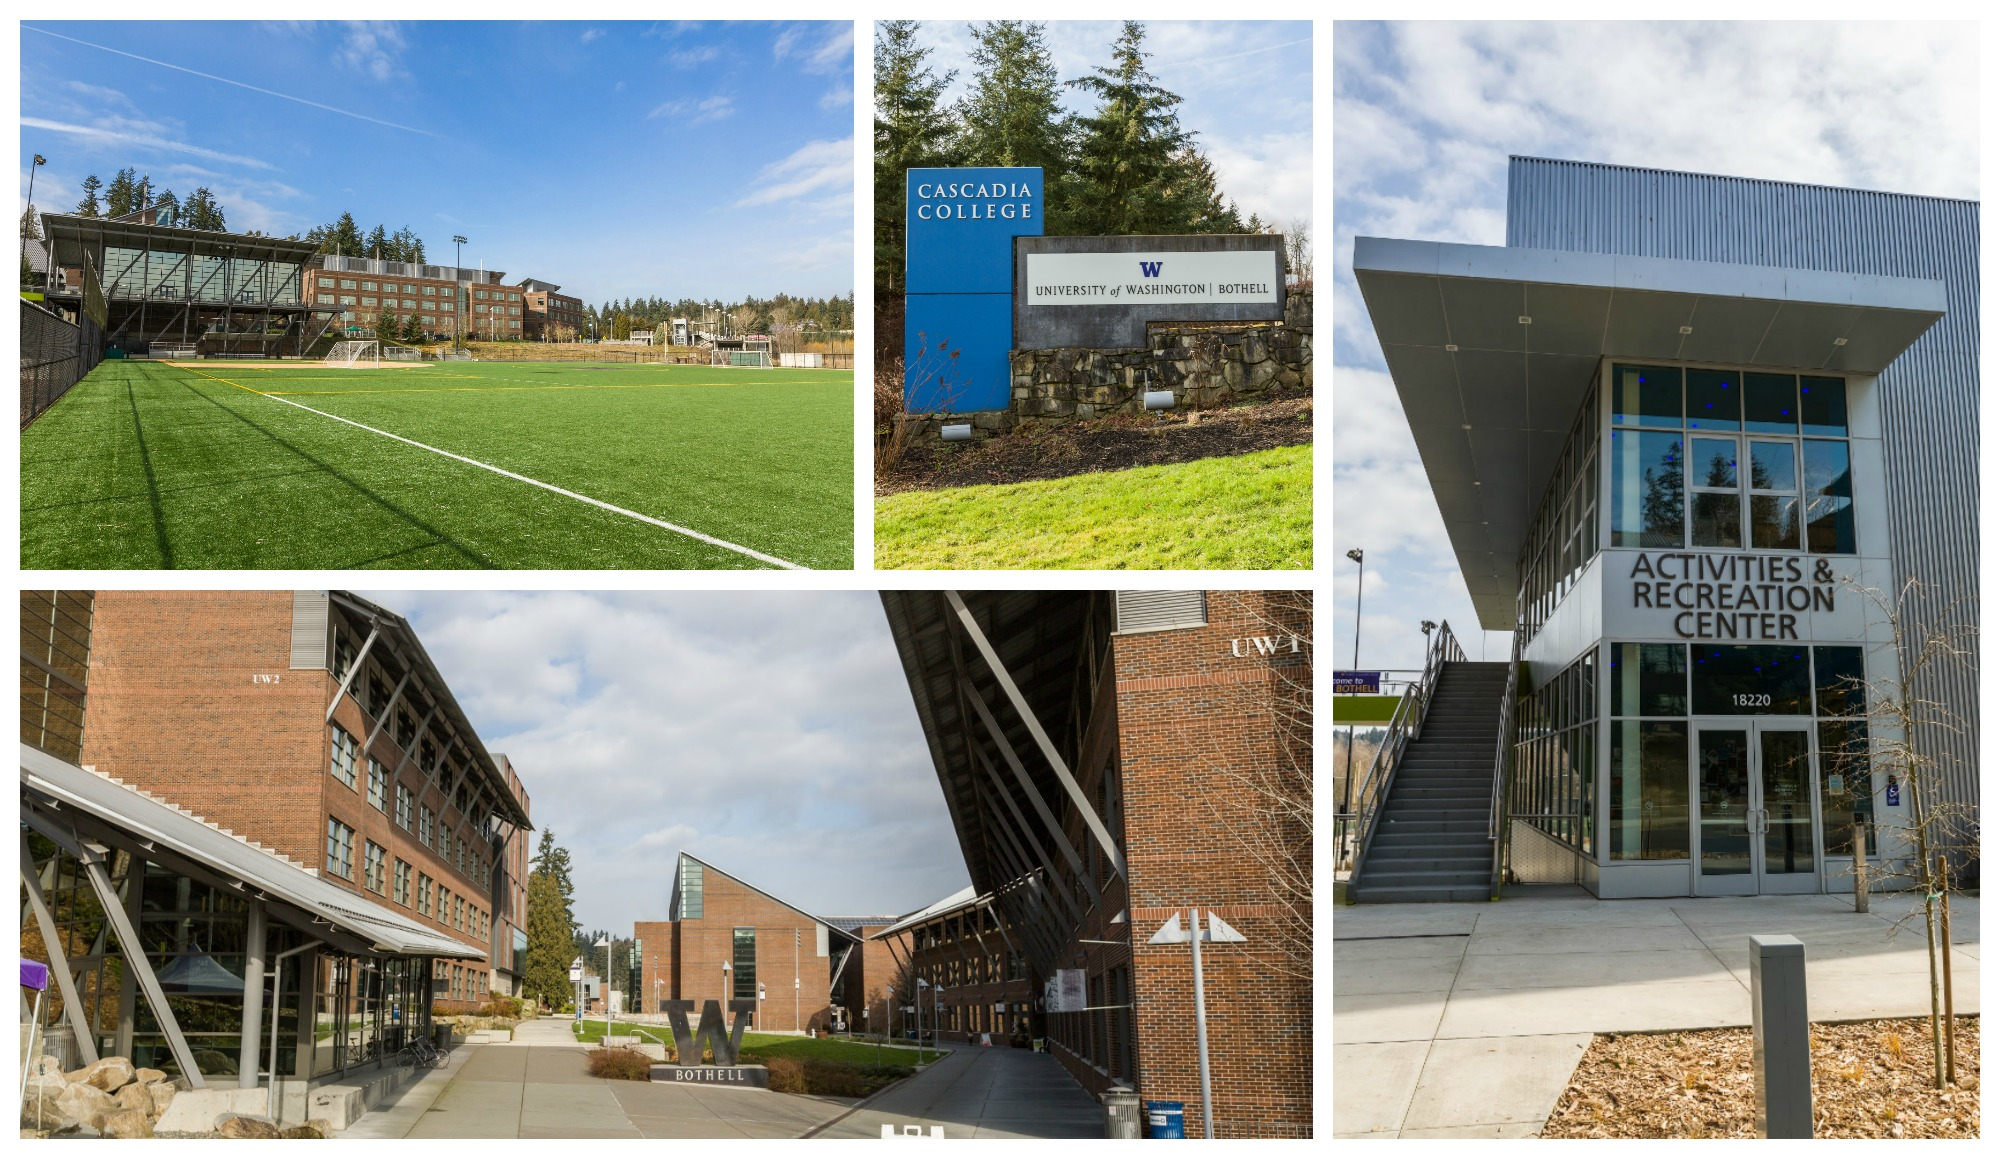 WindermereNorth_Bothell_UniversityofWashingtonBothell